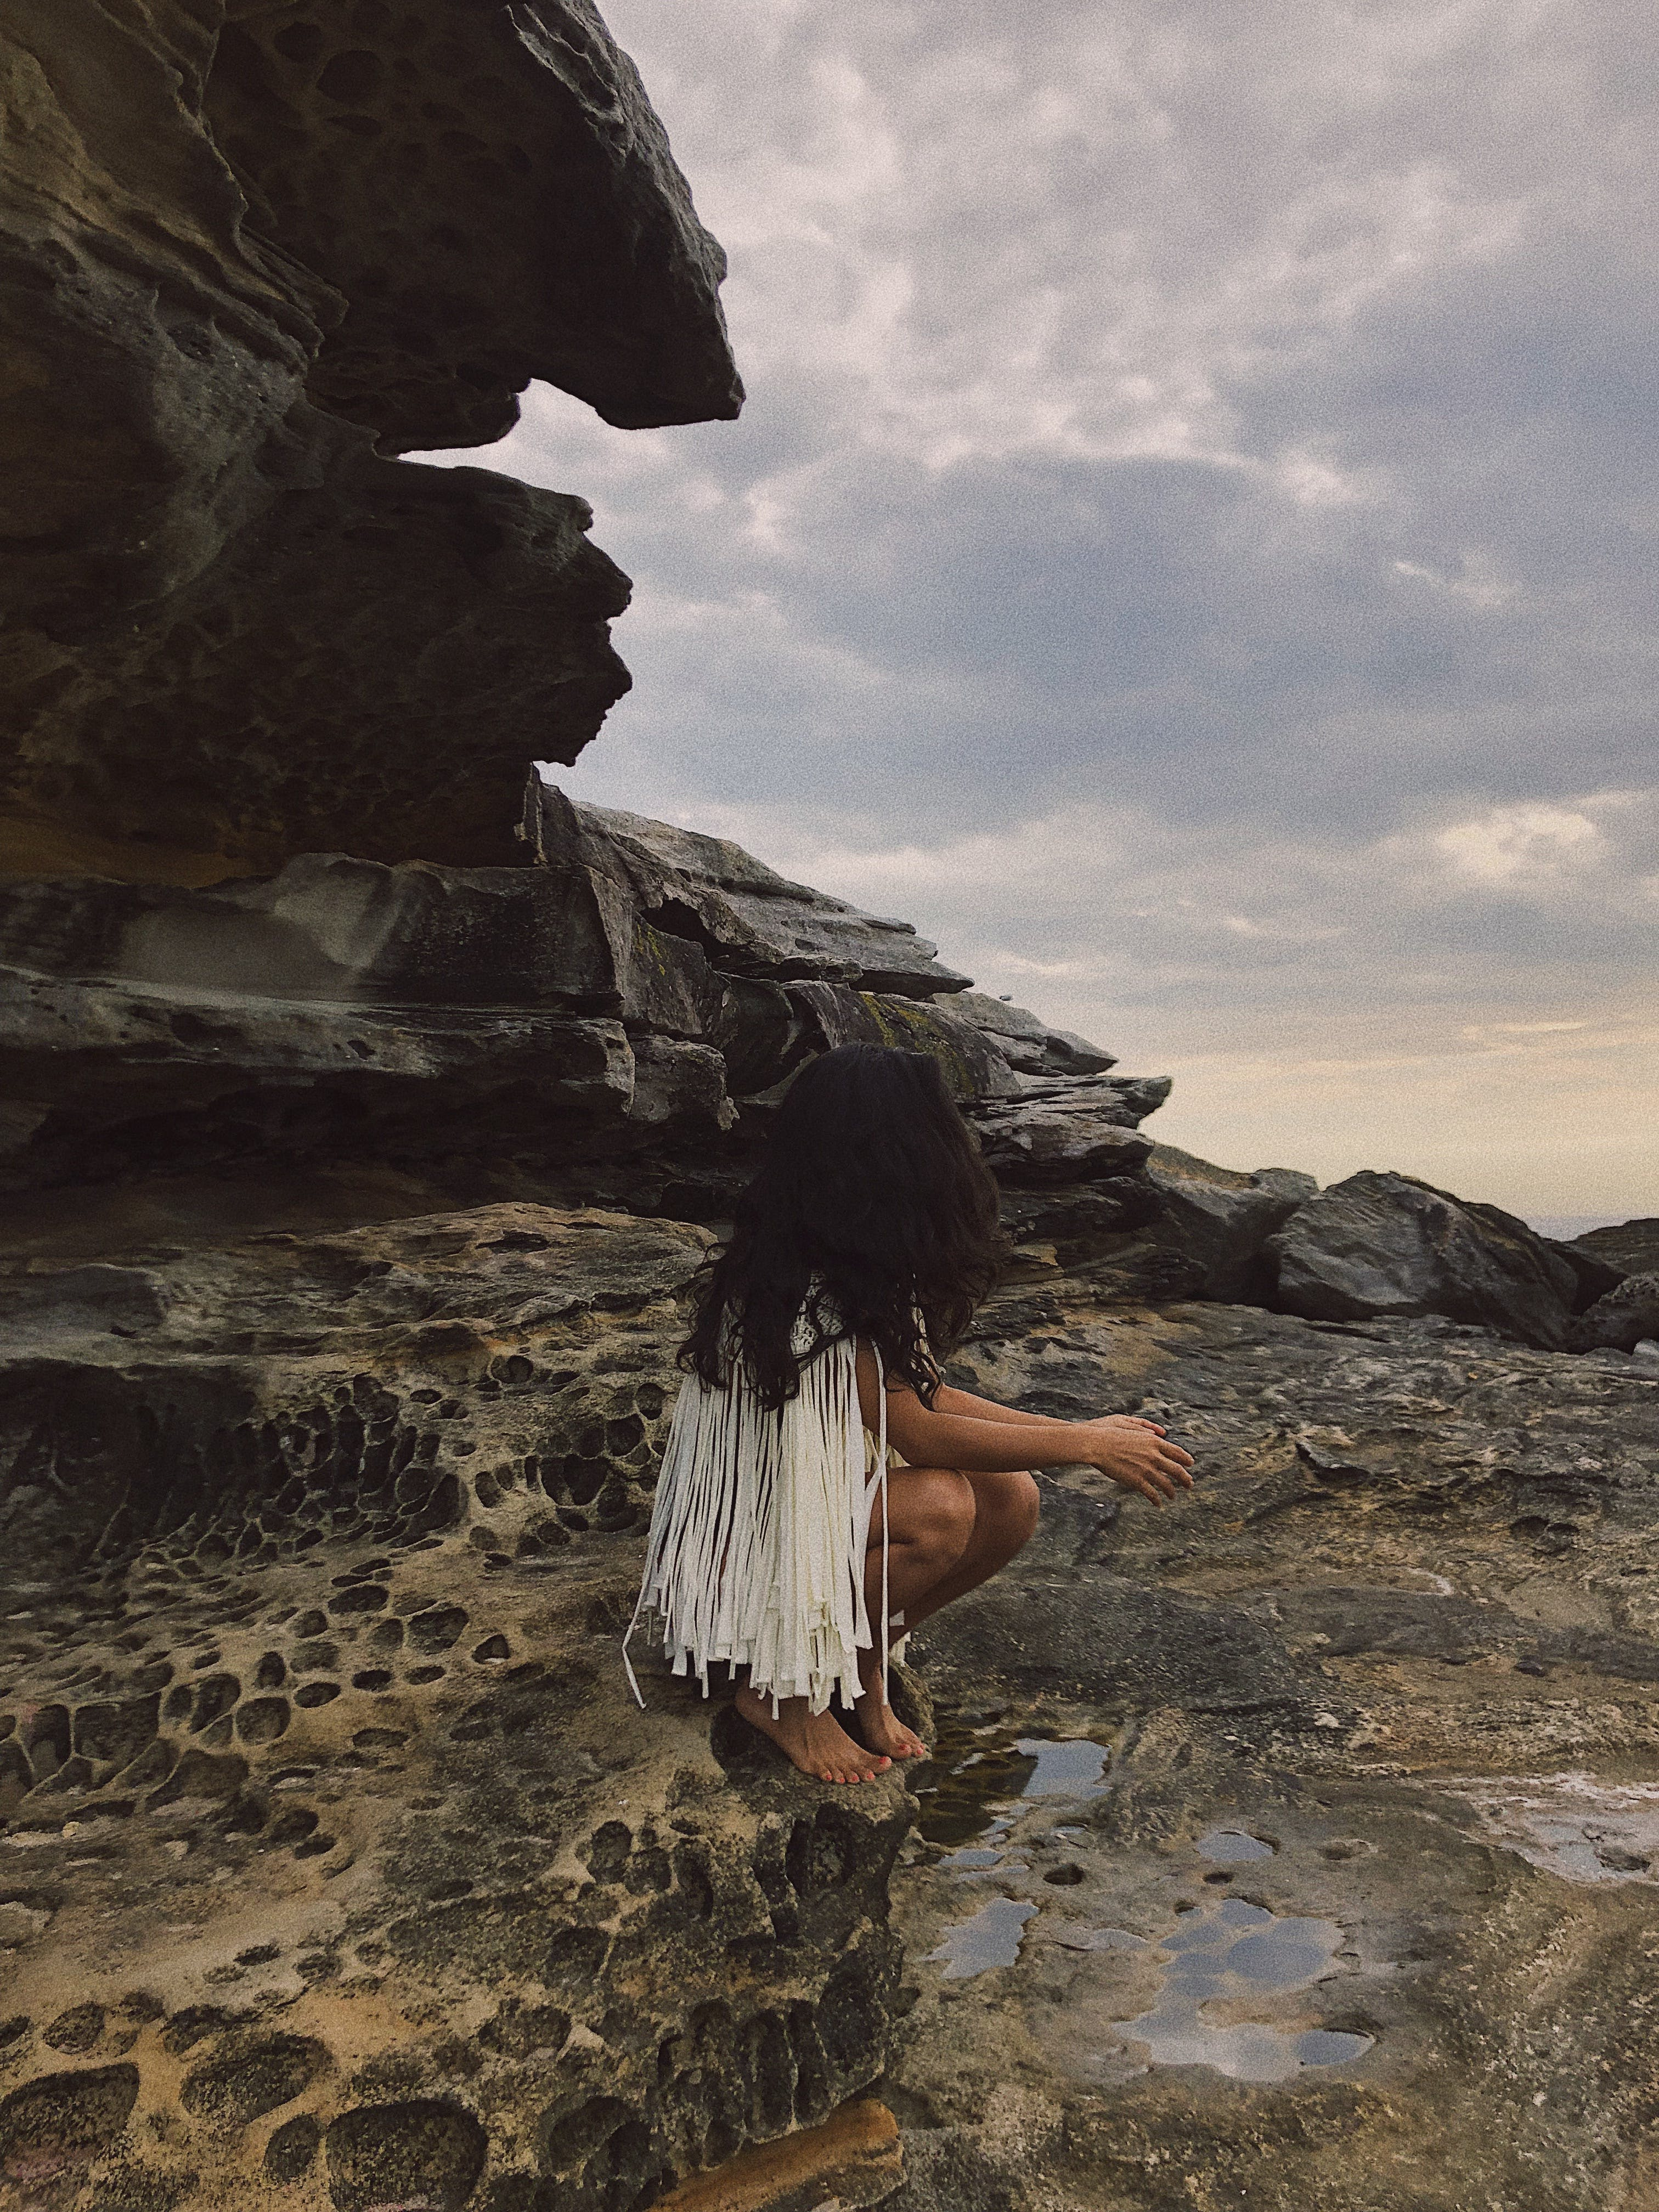 Selective Focus Photography of Woman Sitting on Rock Formation